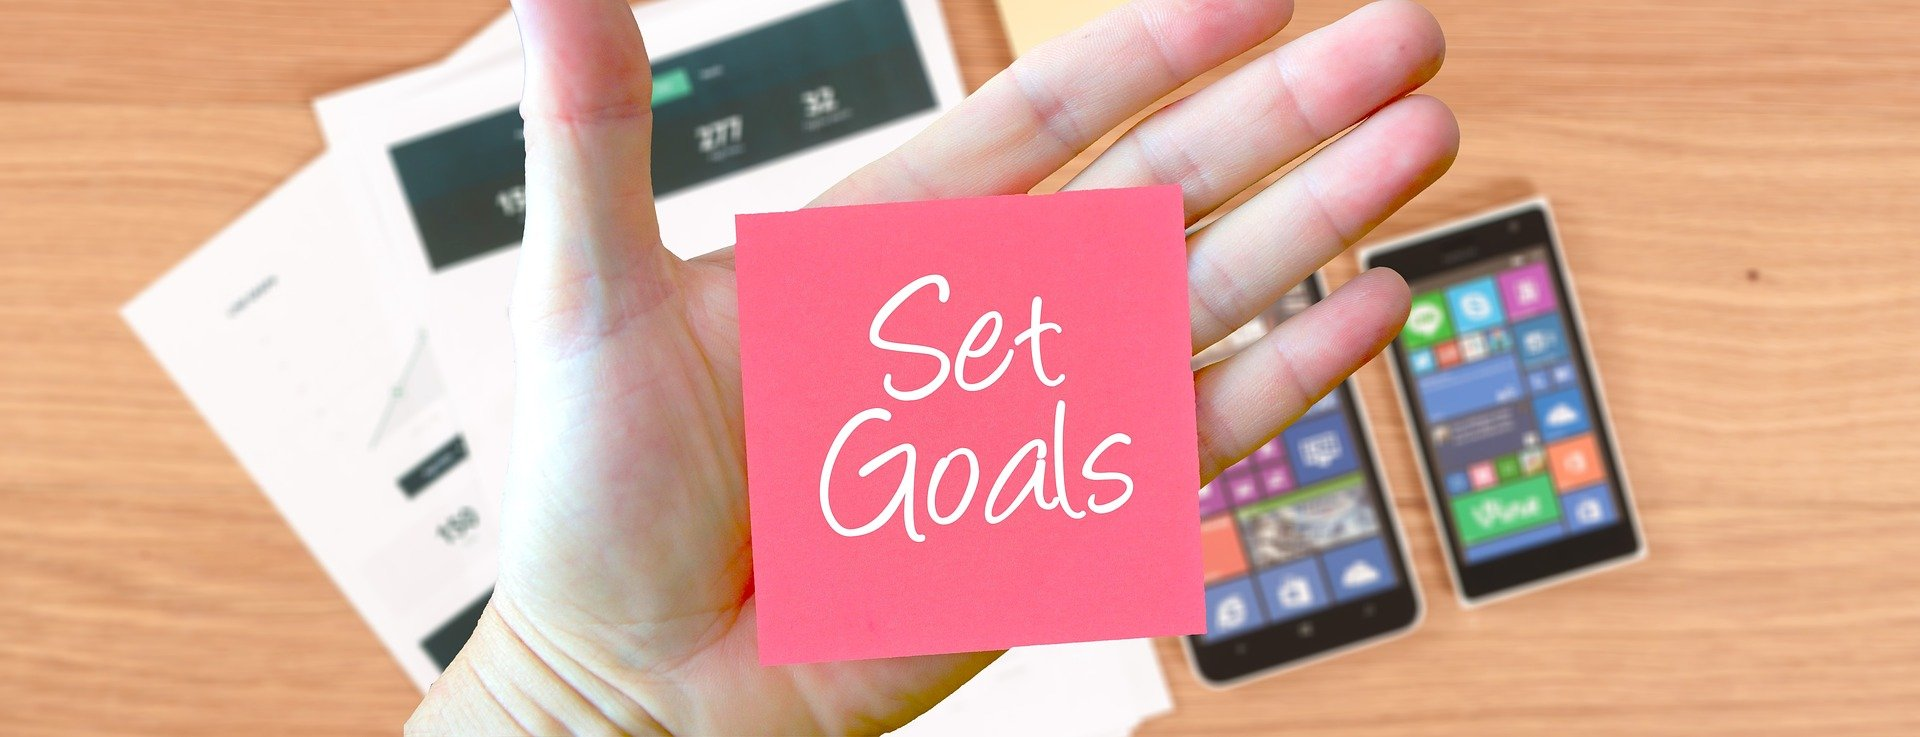 Setting Goals With Your Child